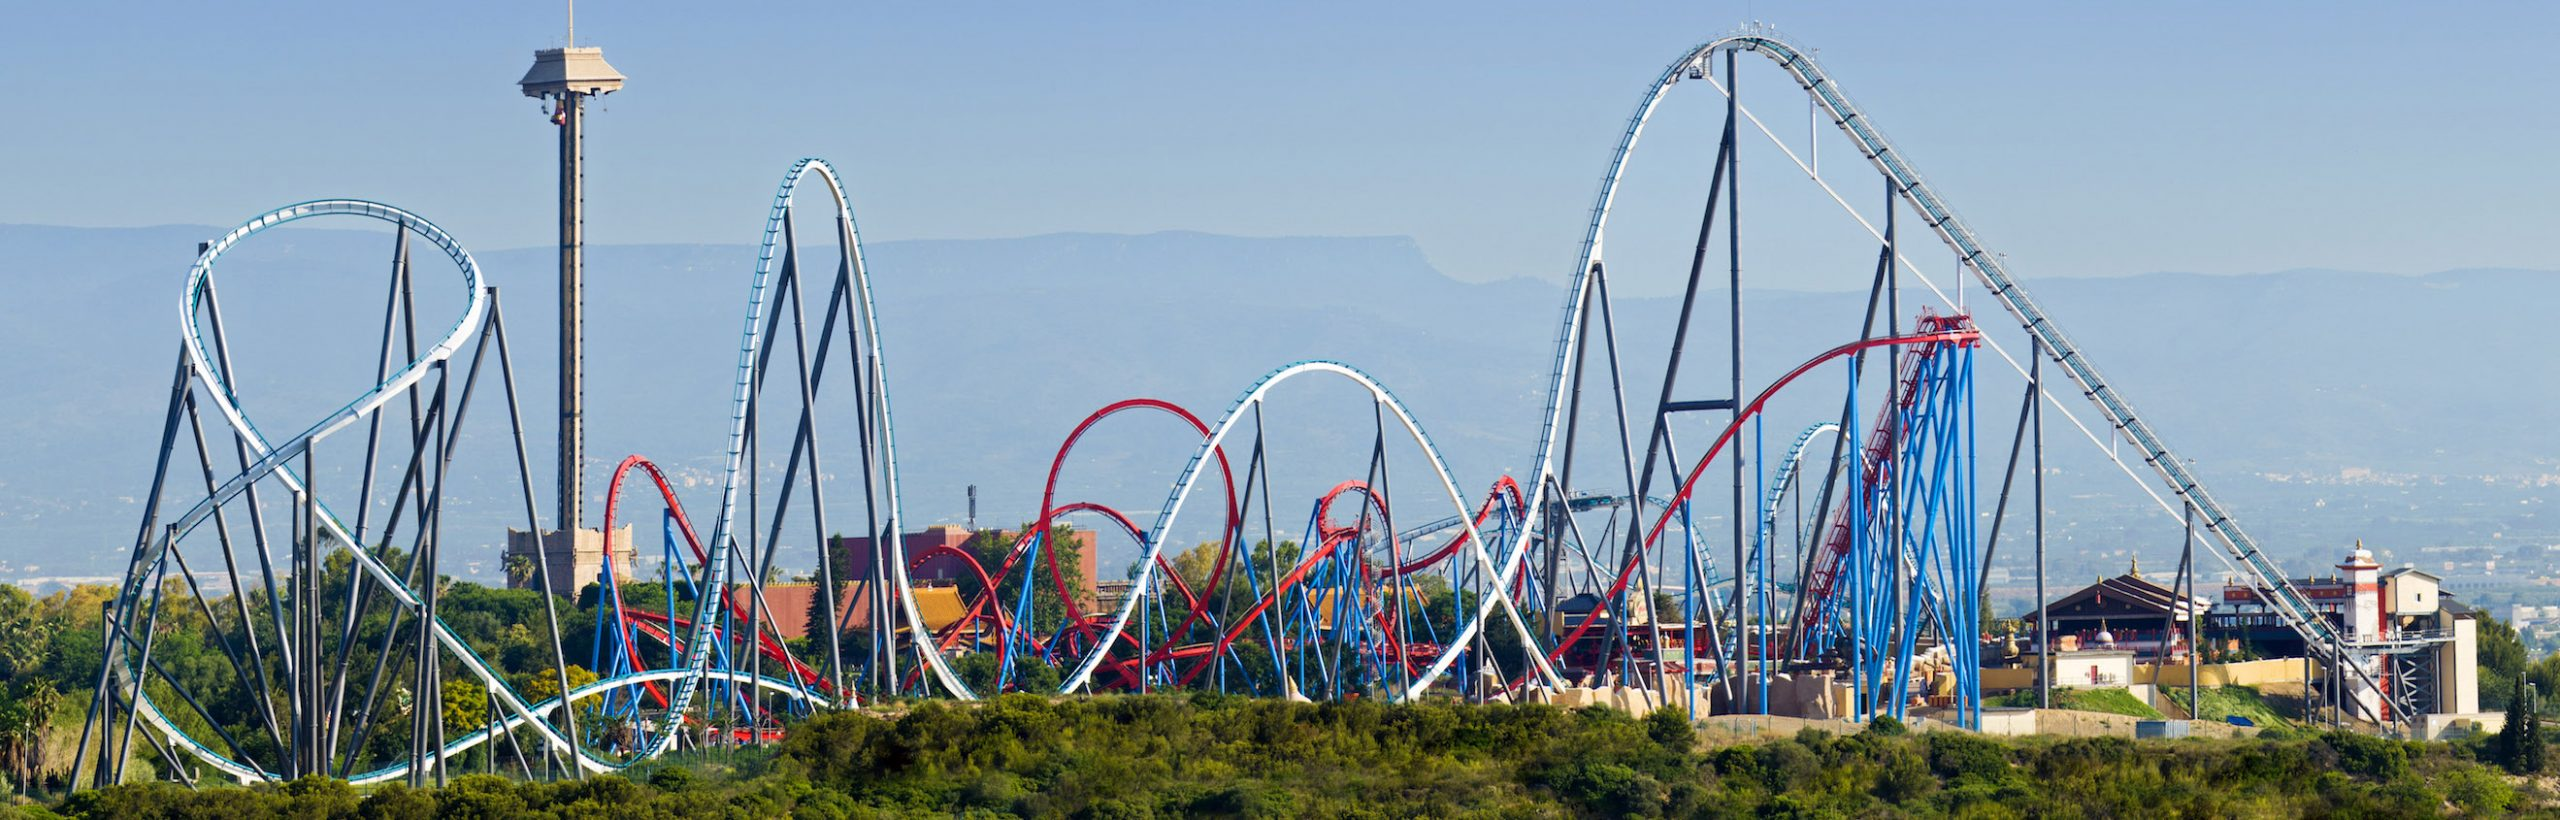 PortAventura Park from Barcelona day trip